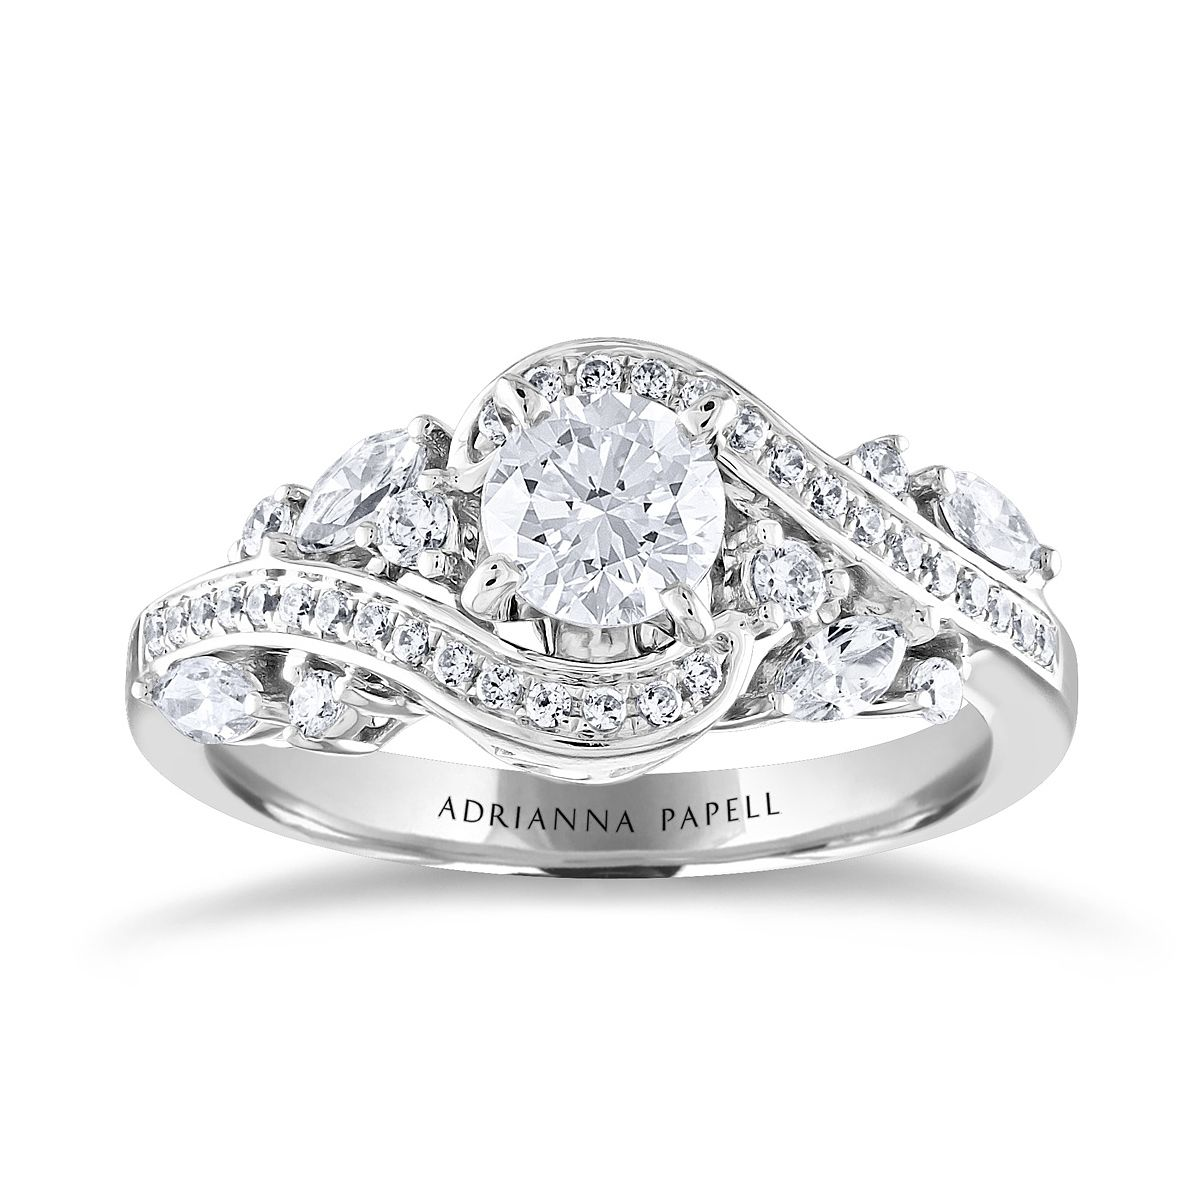 Adrianna Papell 14ct White Gold 1.11ct Total Diamond Ring - Product number 2154145